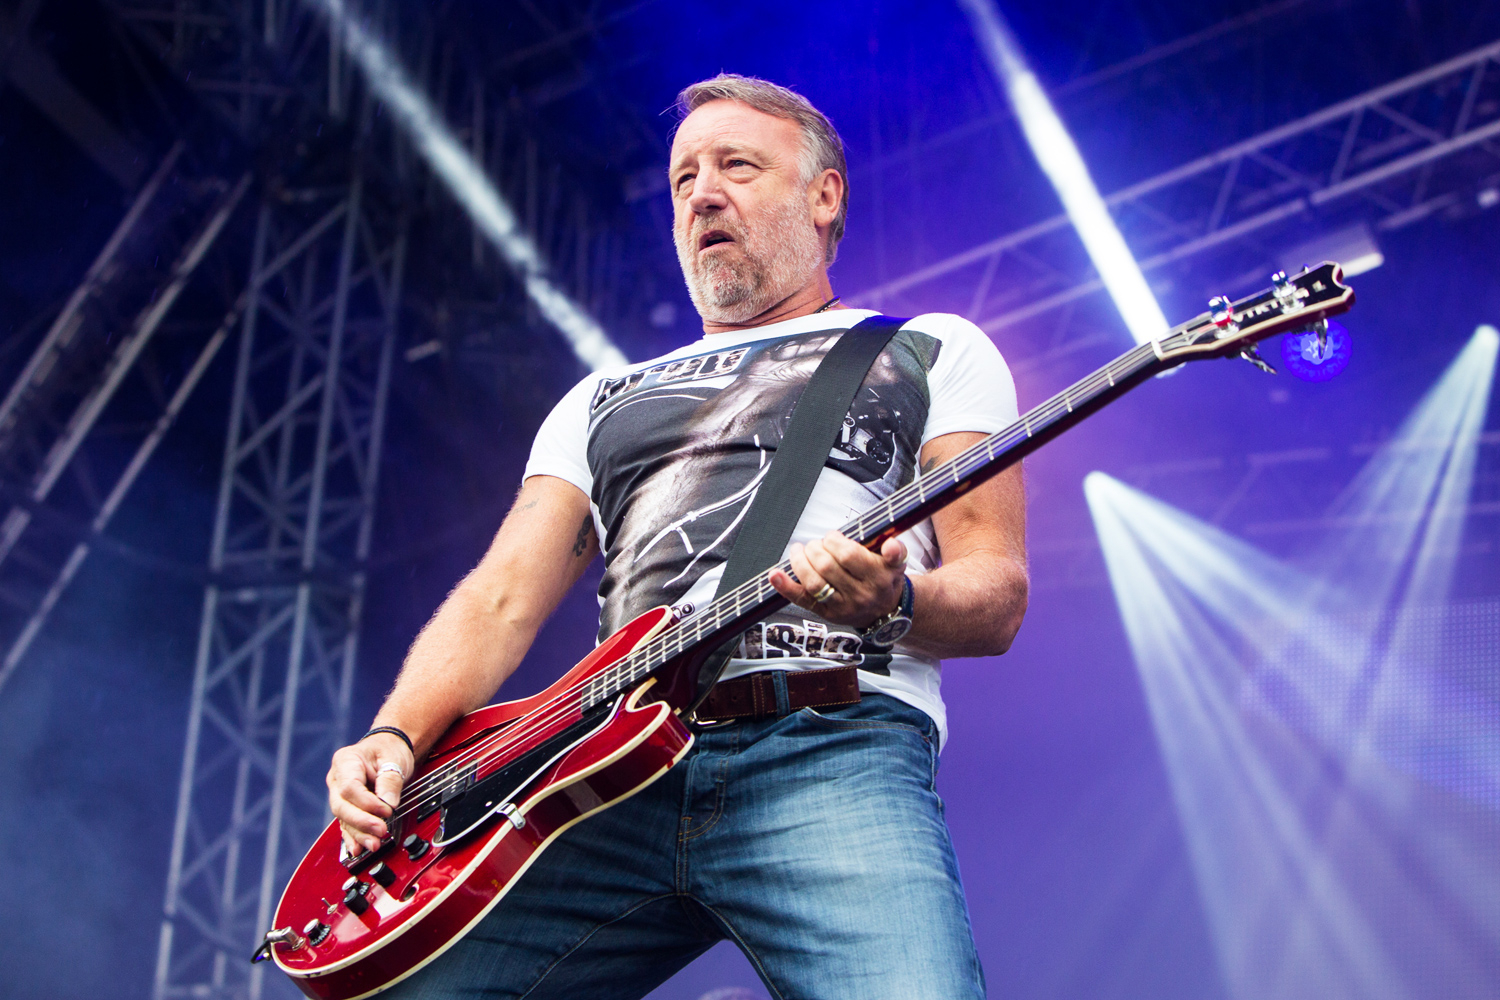 PETER HOOK&THE LIGHT IL 29.08.19 a Pordenone (MIV)